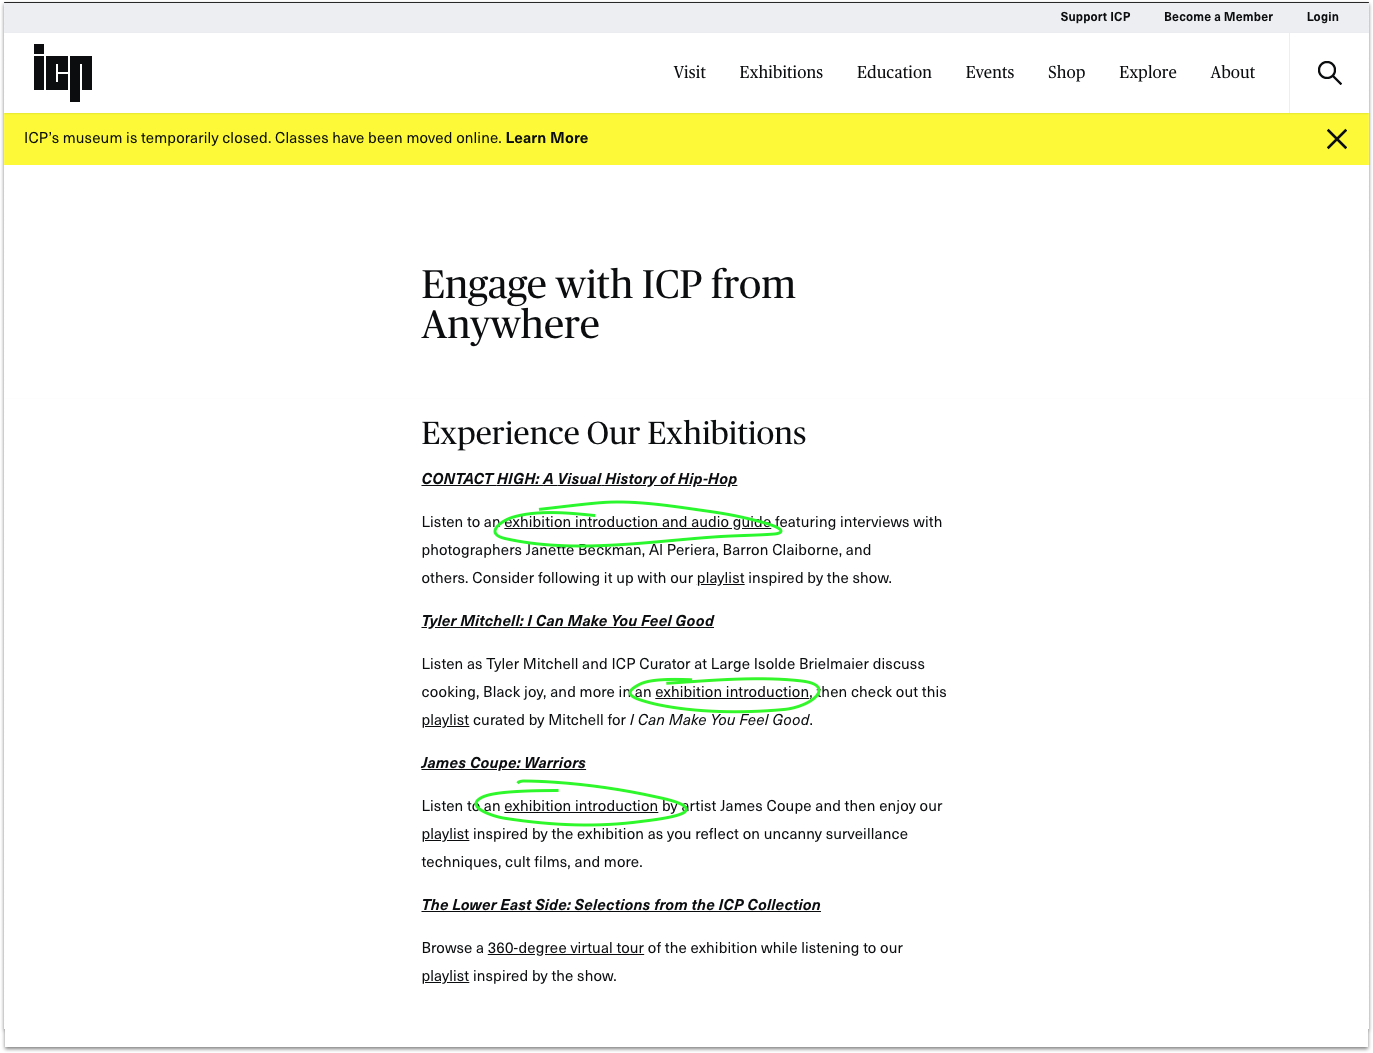 """""""Engage with ICP from Anywhere"""" page on ICP's website"""